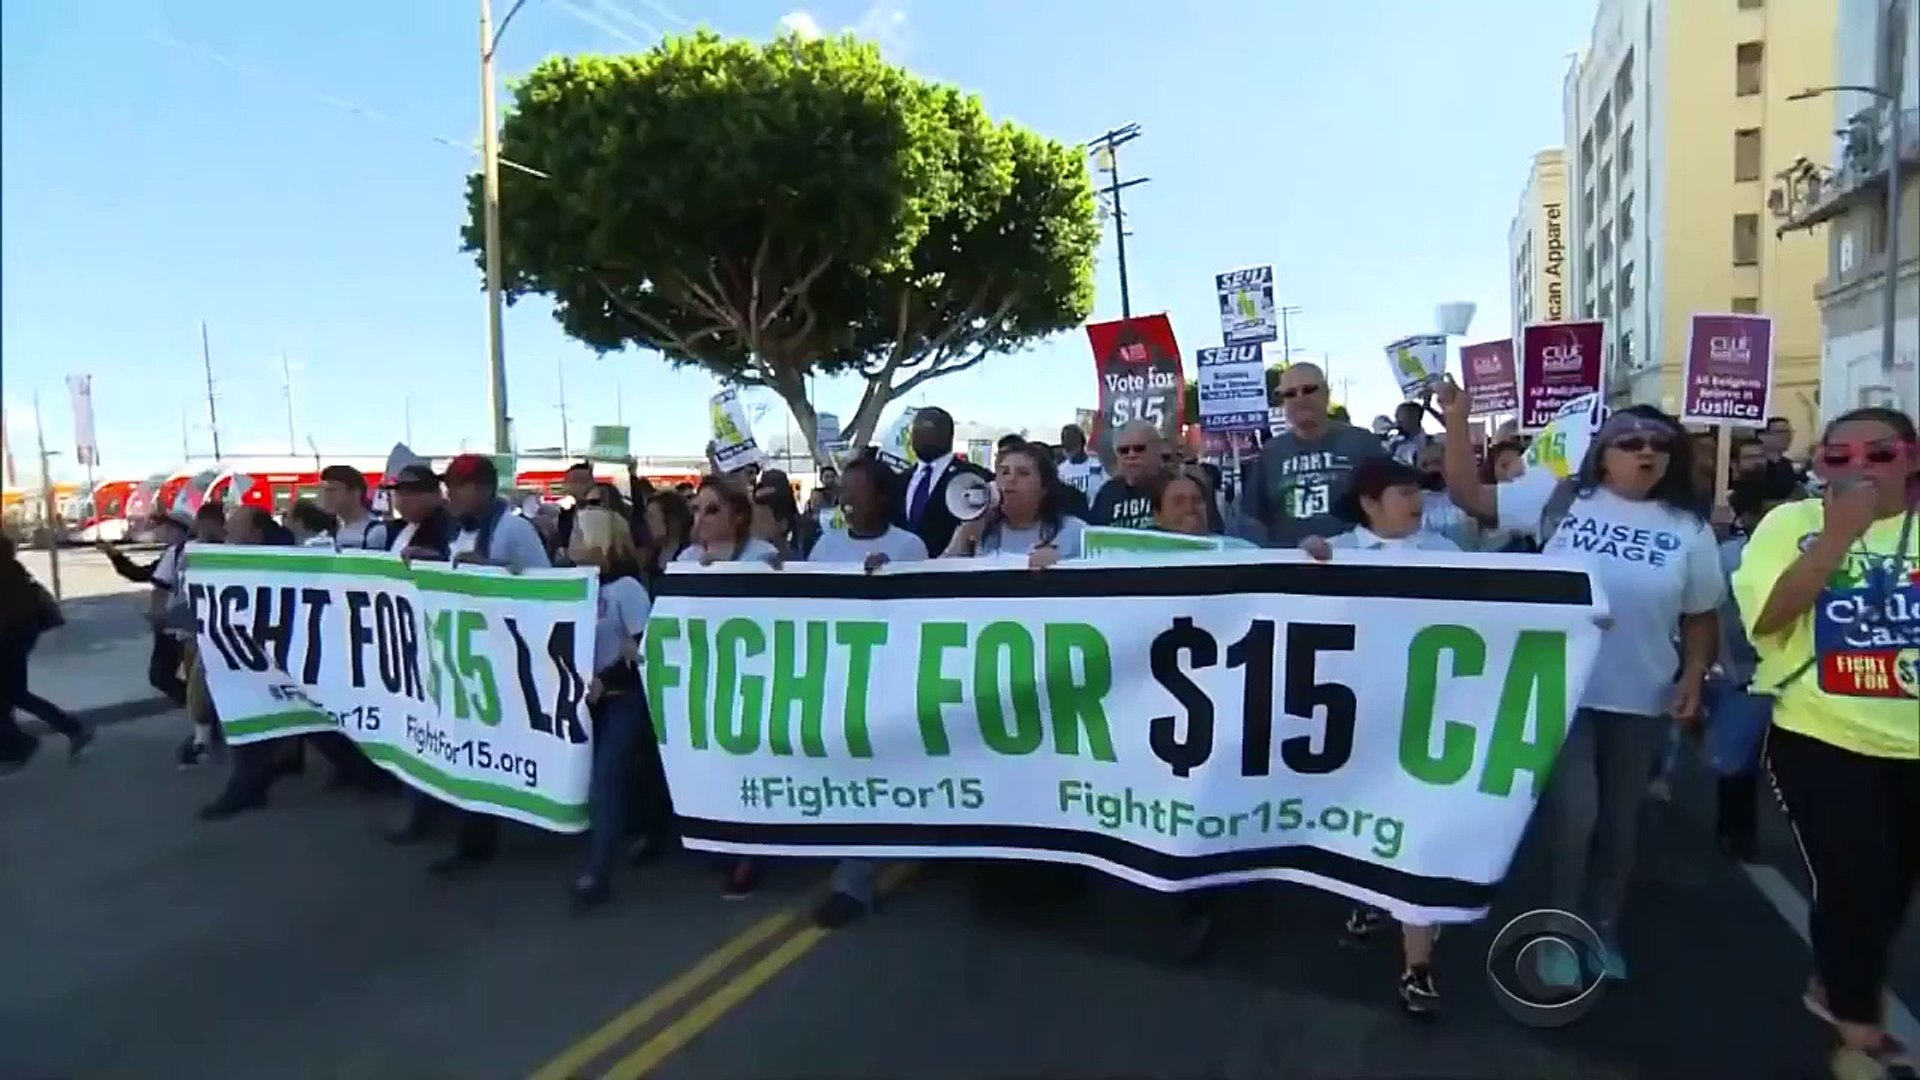 Minimum wage protests take place across the country